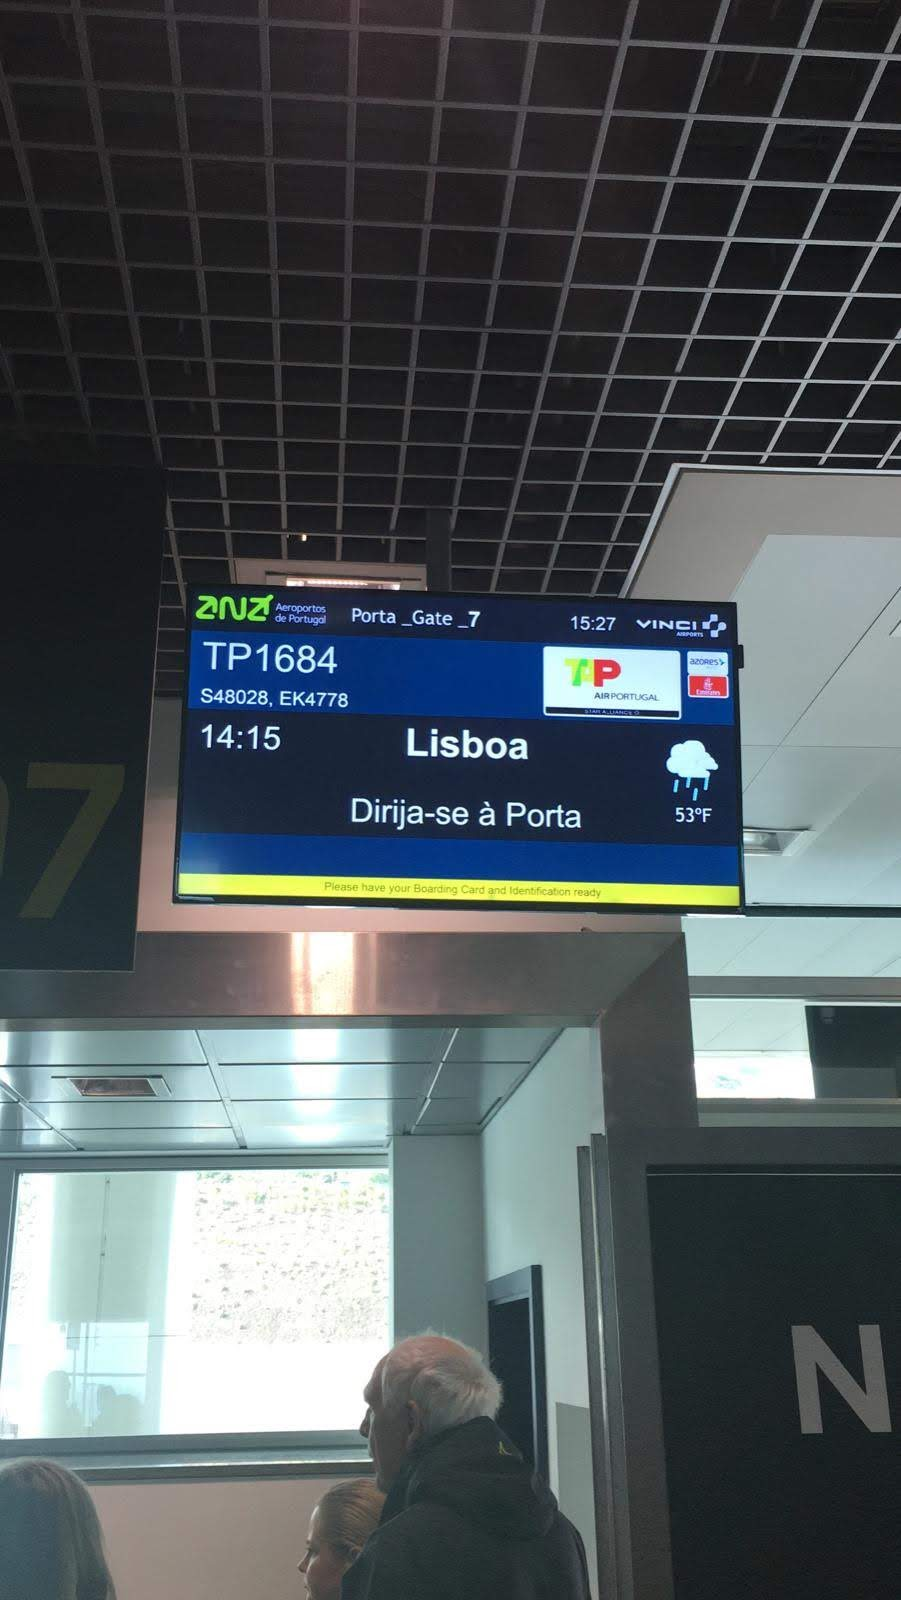 In case of Madeira flight cancellations, why don't they use these panels to inform passengers?